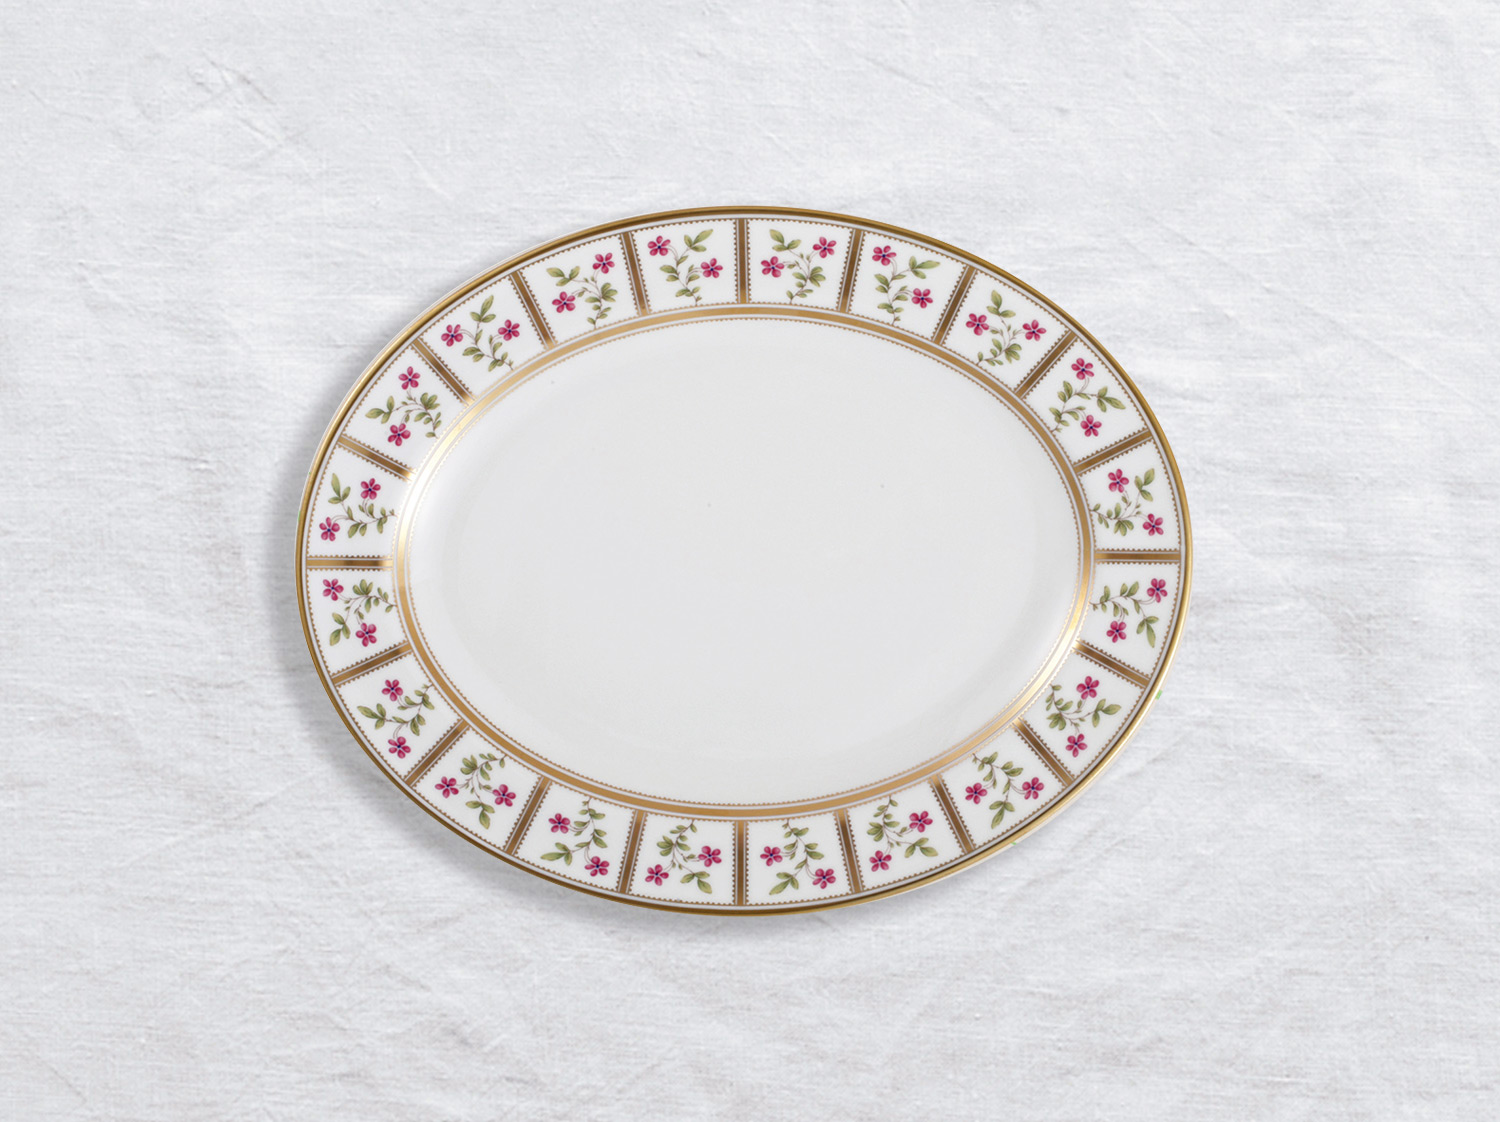 Plat ovale 38 cm en porcelaine de la collection Roseraie Bernardaud